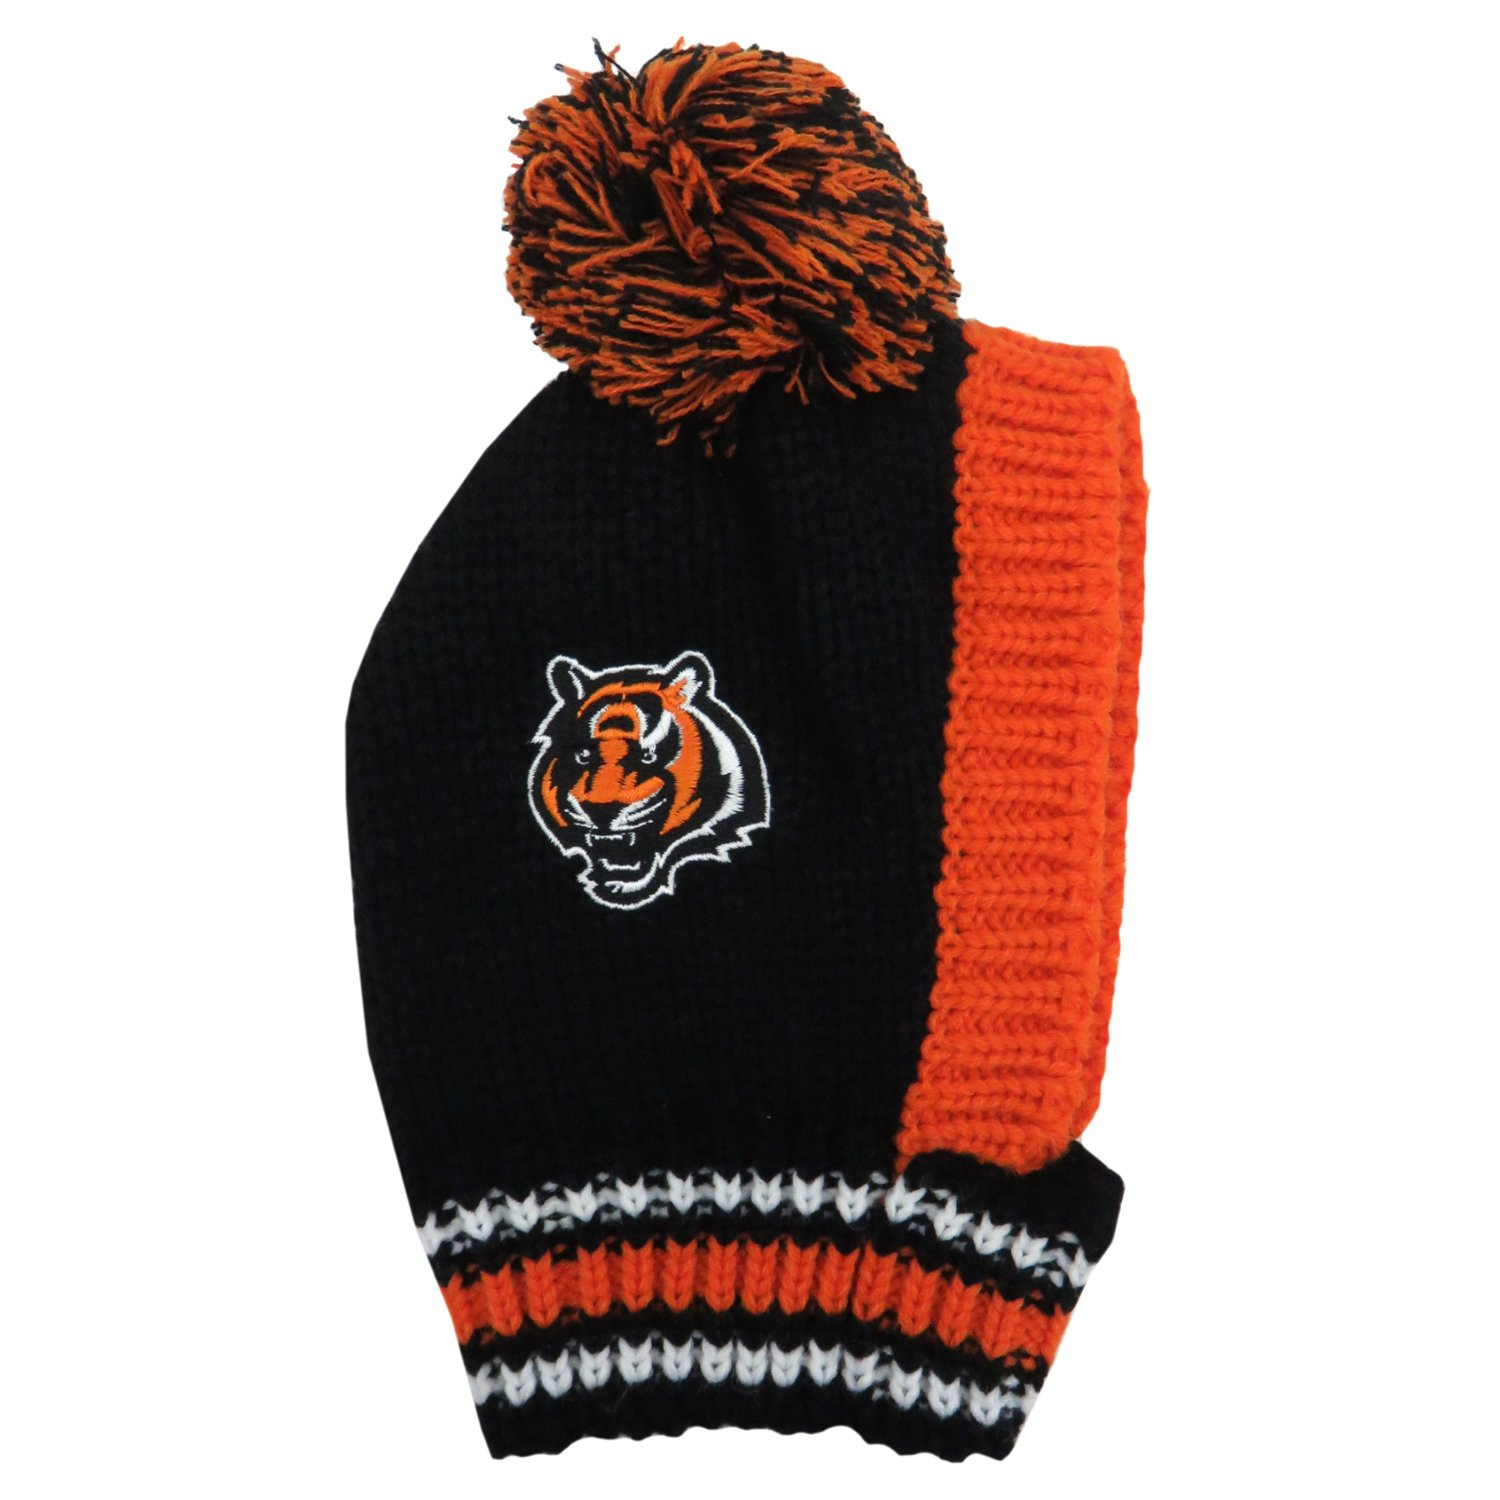 df0341331 Amazon.com   Littlearth NFL Pet Knit Hat   Sports   Outdoors